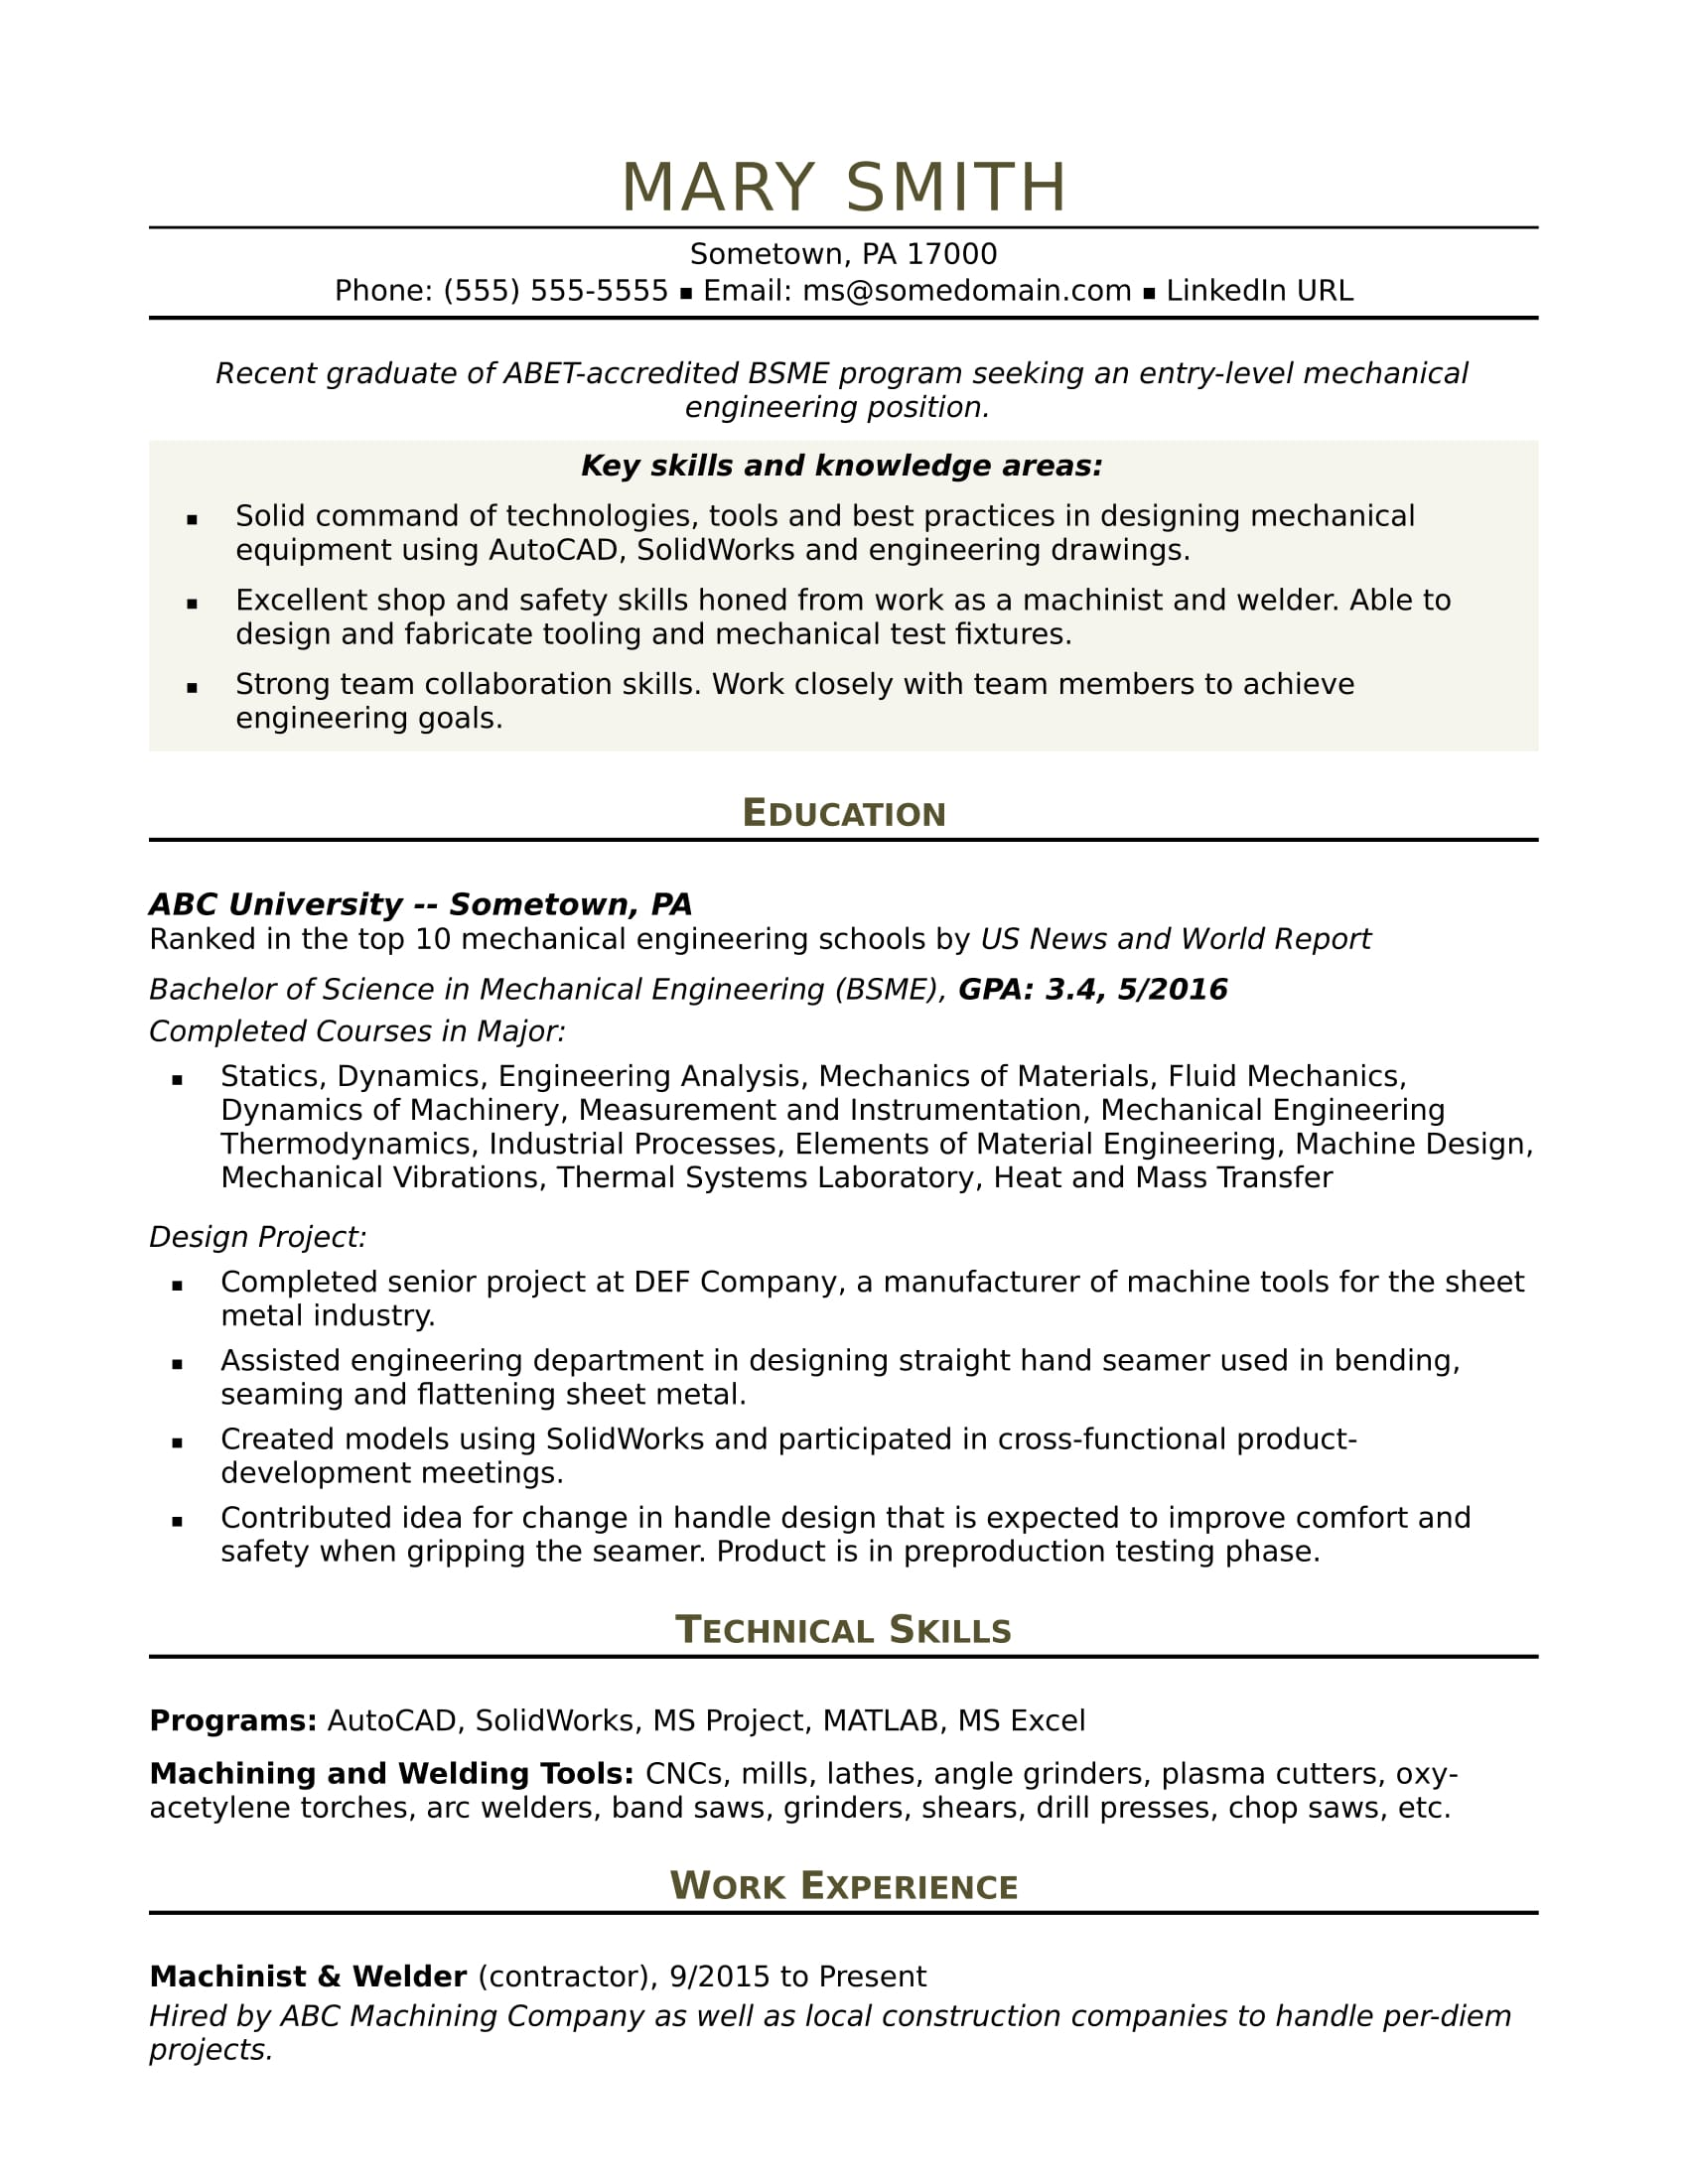 Sample Resume For An Entry-Level Mechanical Engineer | Monster com